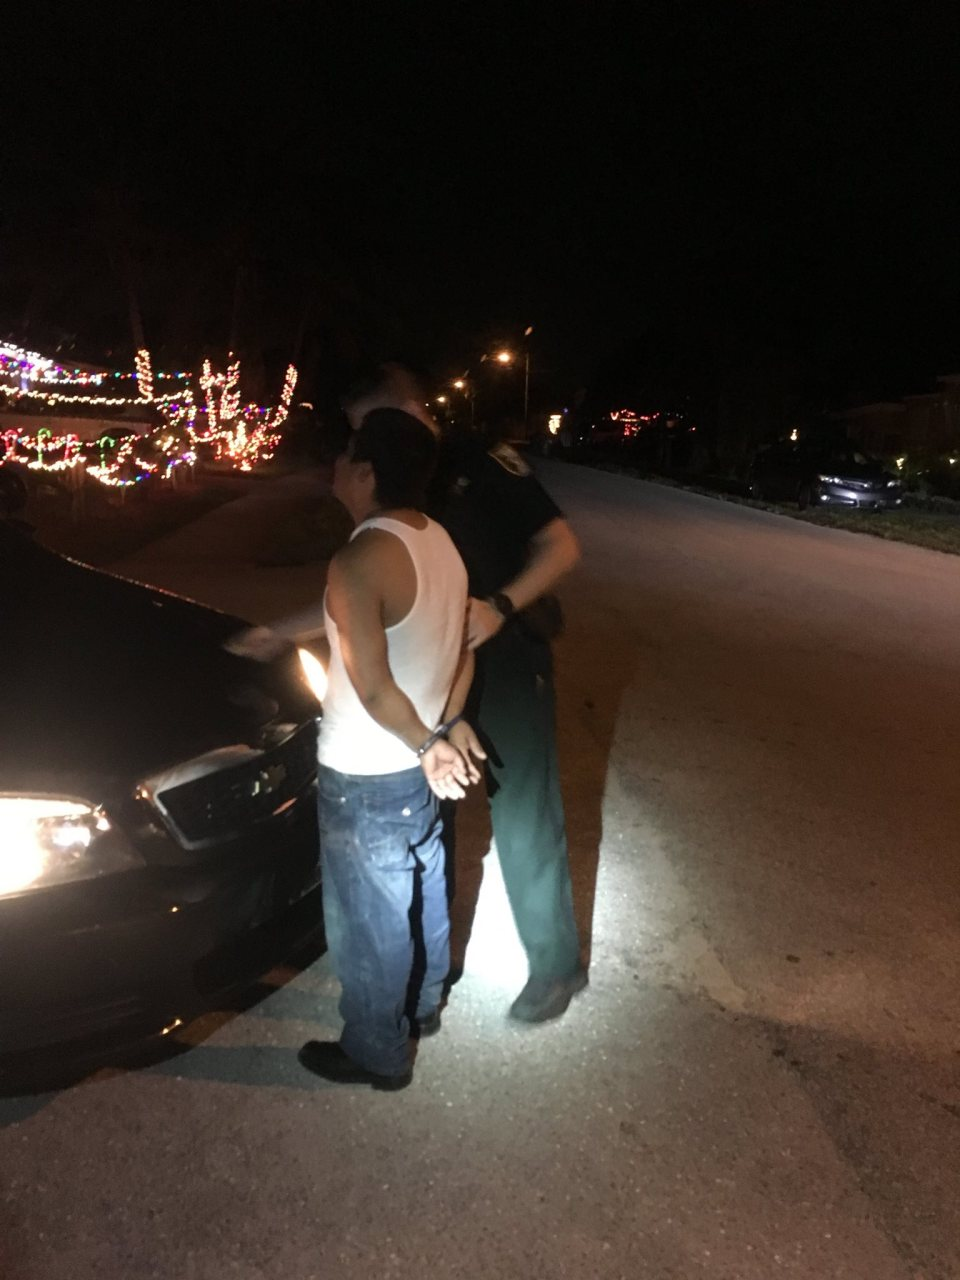 Martin County: Drunk driver stopped with trash can under car